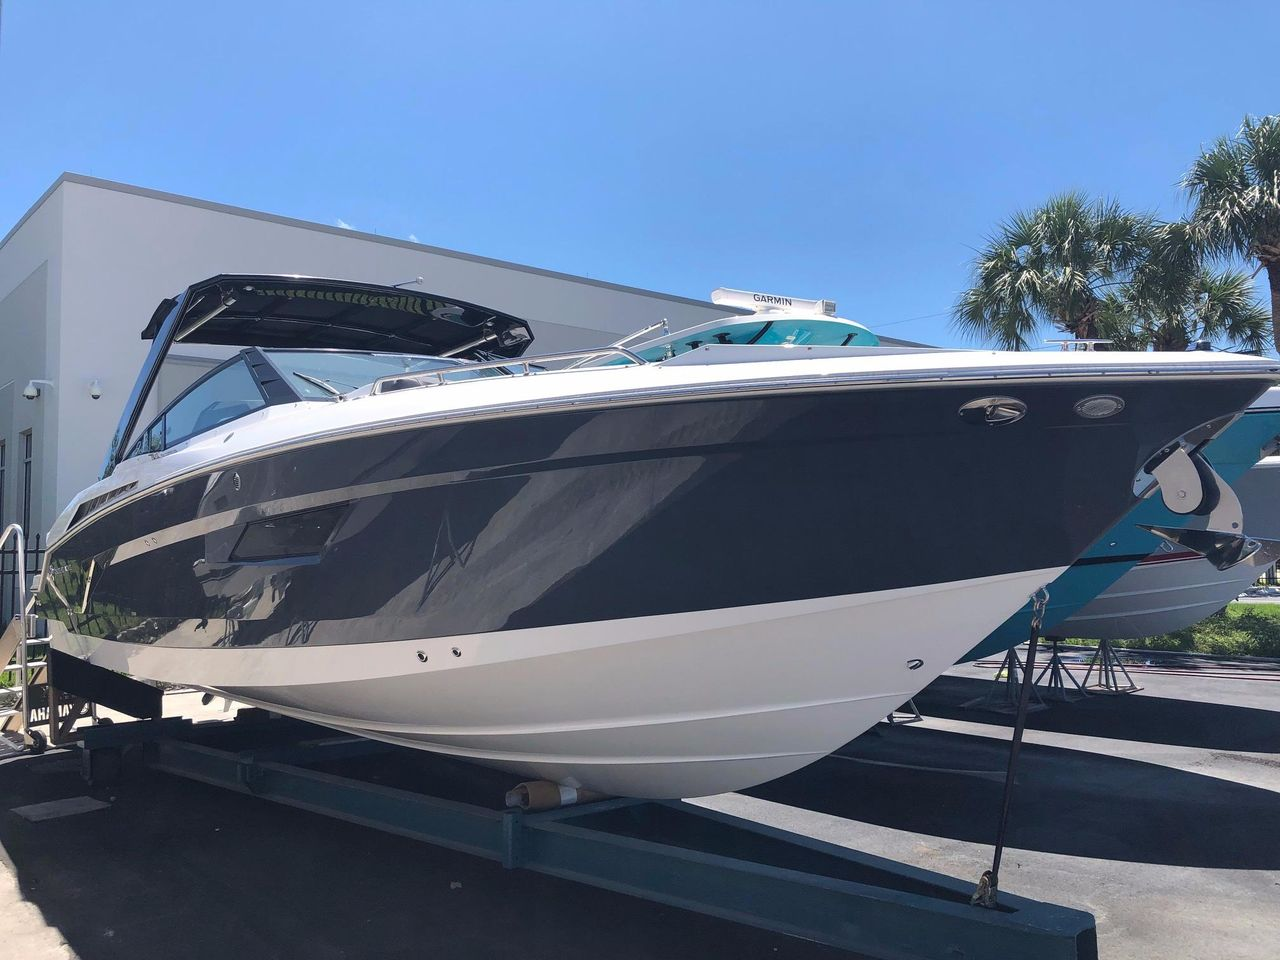 2019 New Cruisers Yachts 338ob Bowrider Boat For Sale Miami Fl